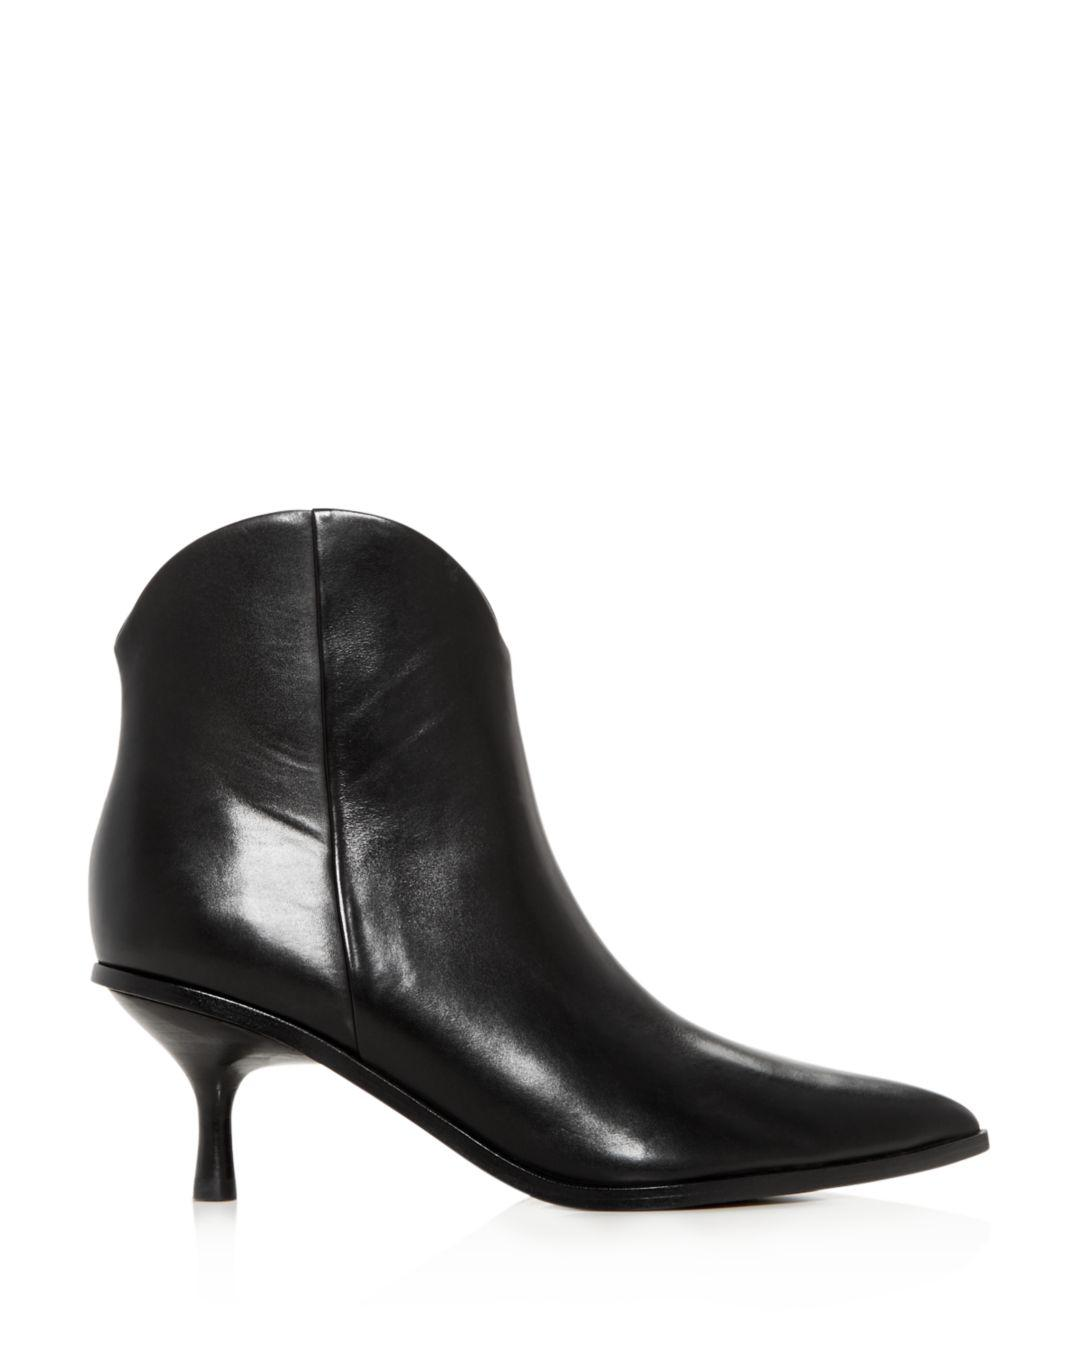 Sigerson Morrison Leather Hayleigh Kitten Heel Ankle Boot in Black